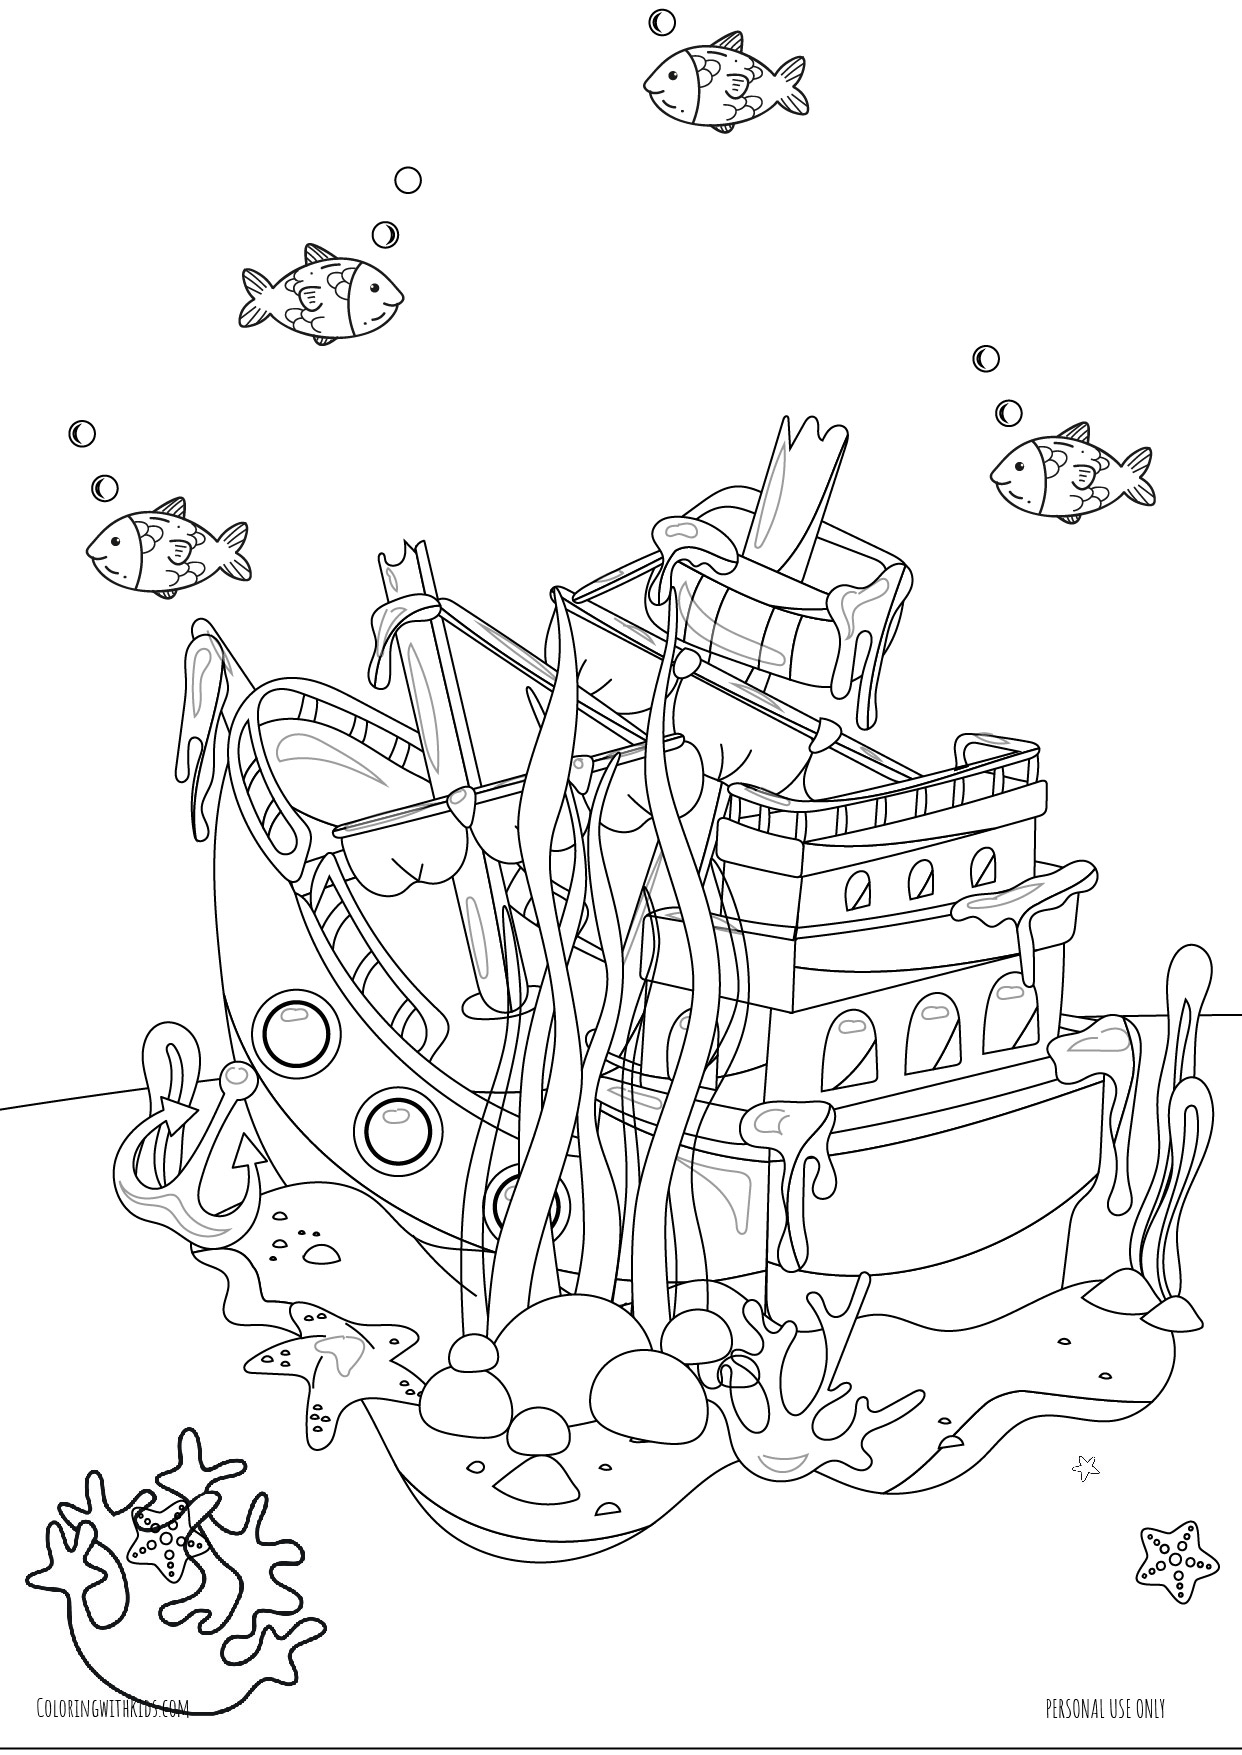 Shipwreck under the sea coloring page